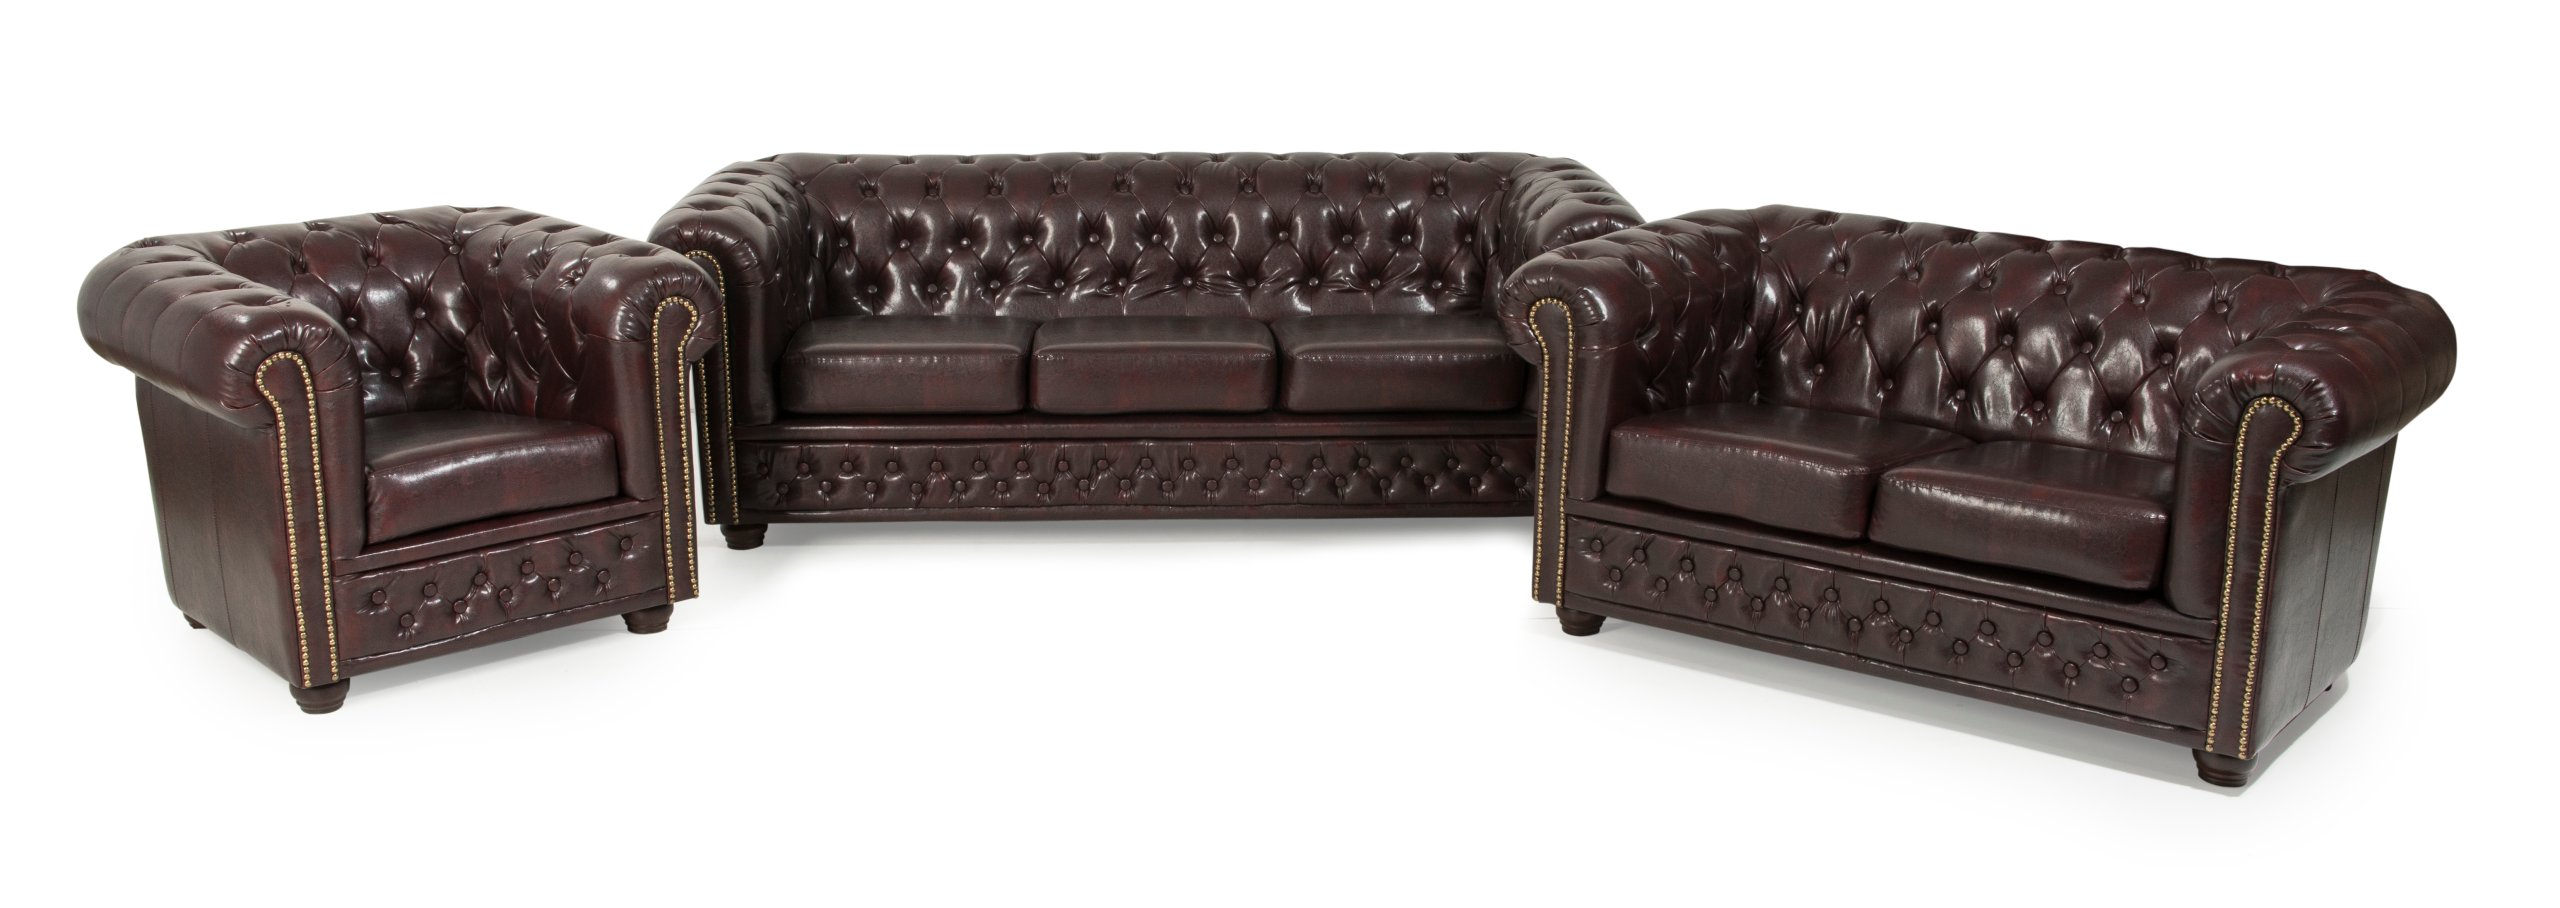 Lounge Sessel Wildleder Details Zu Chesterfield Sofa 3 2er Sitzer Sessel Hocker Bett Dunkelbraun Leder Look